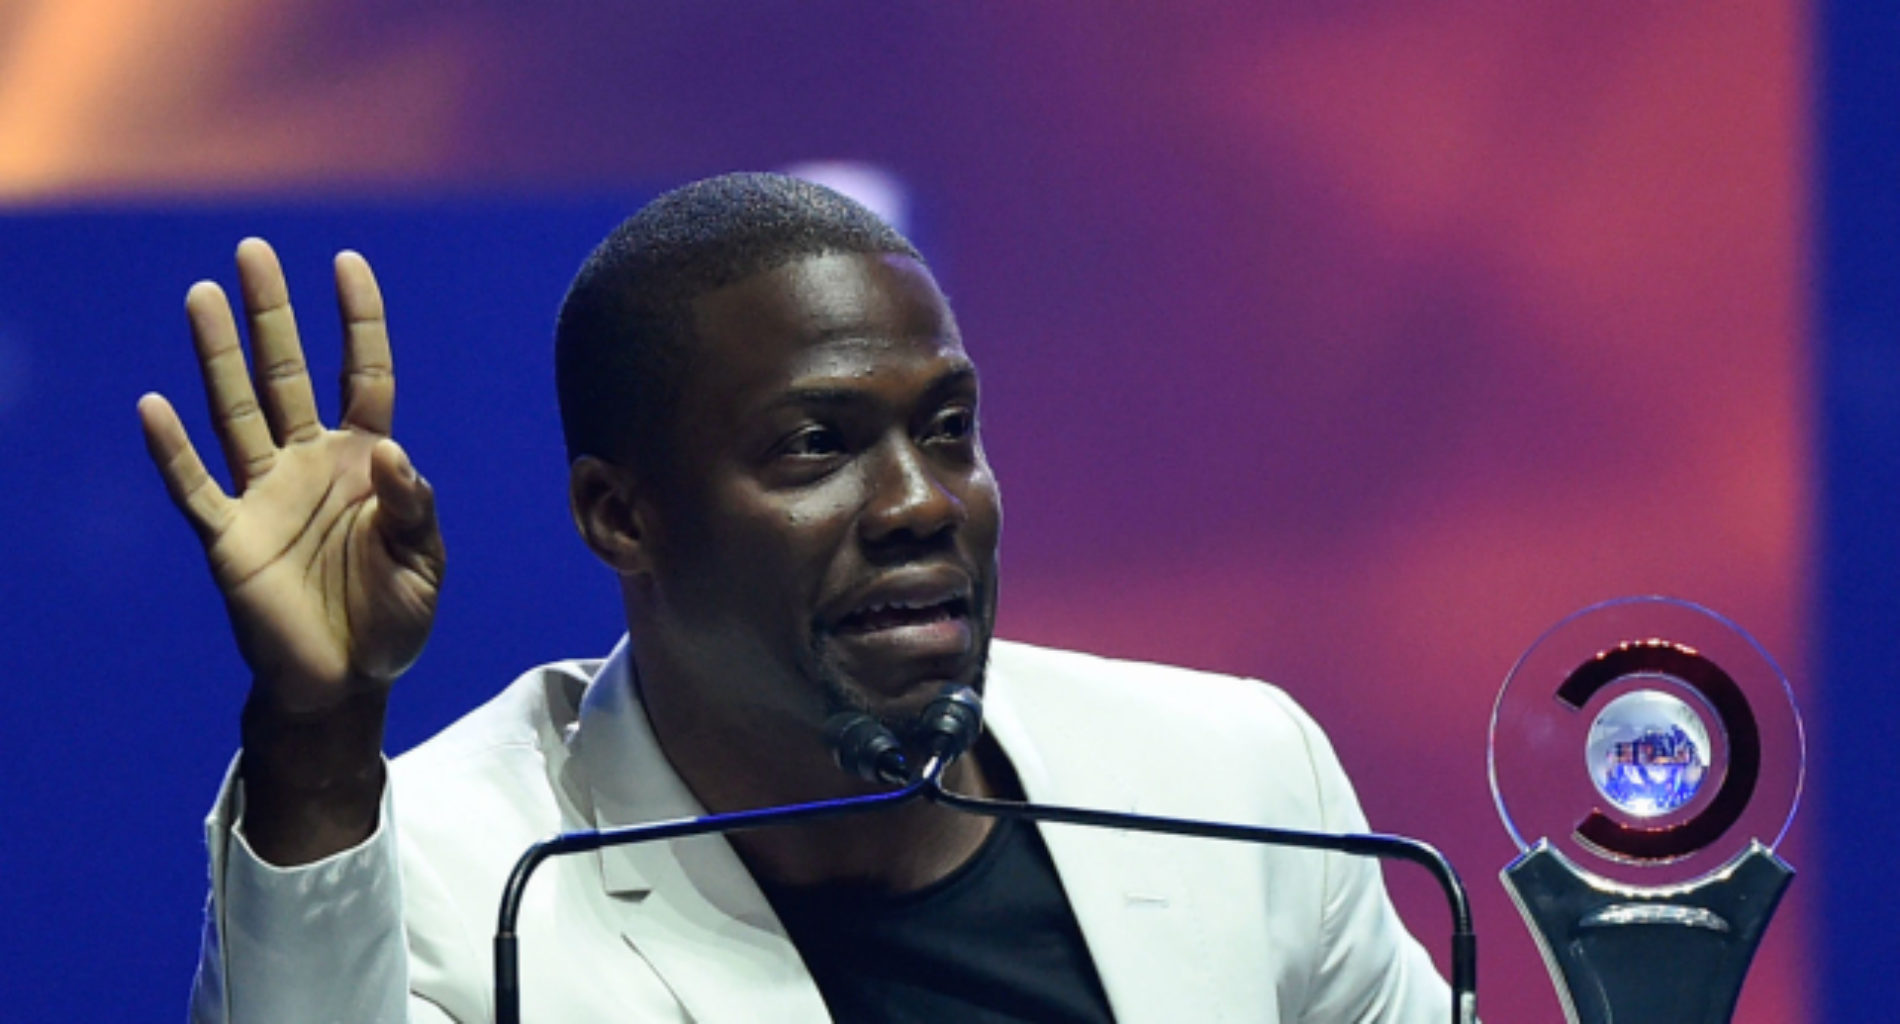 Kevin Hart addresses 'joke' about not wanting a gay son